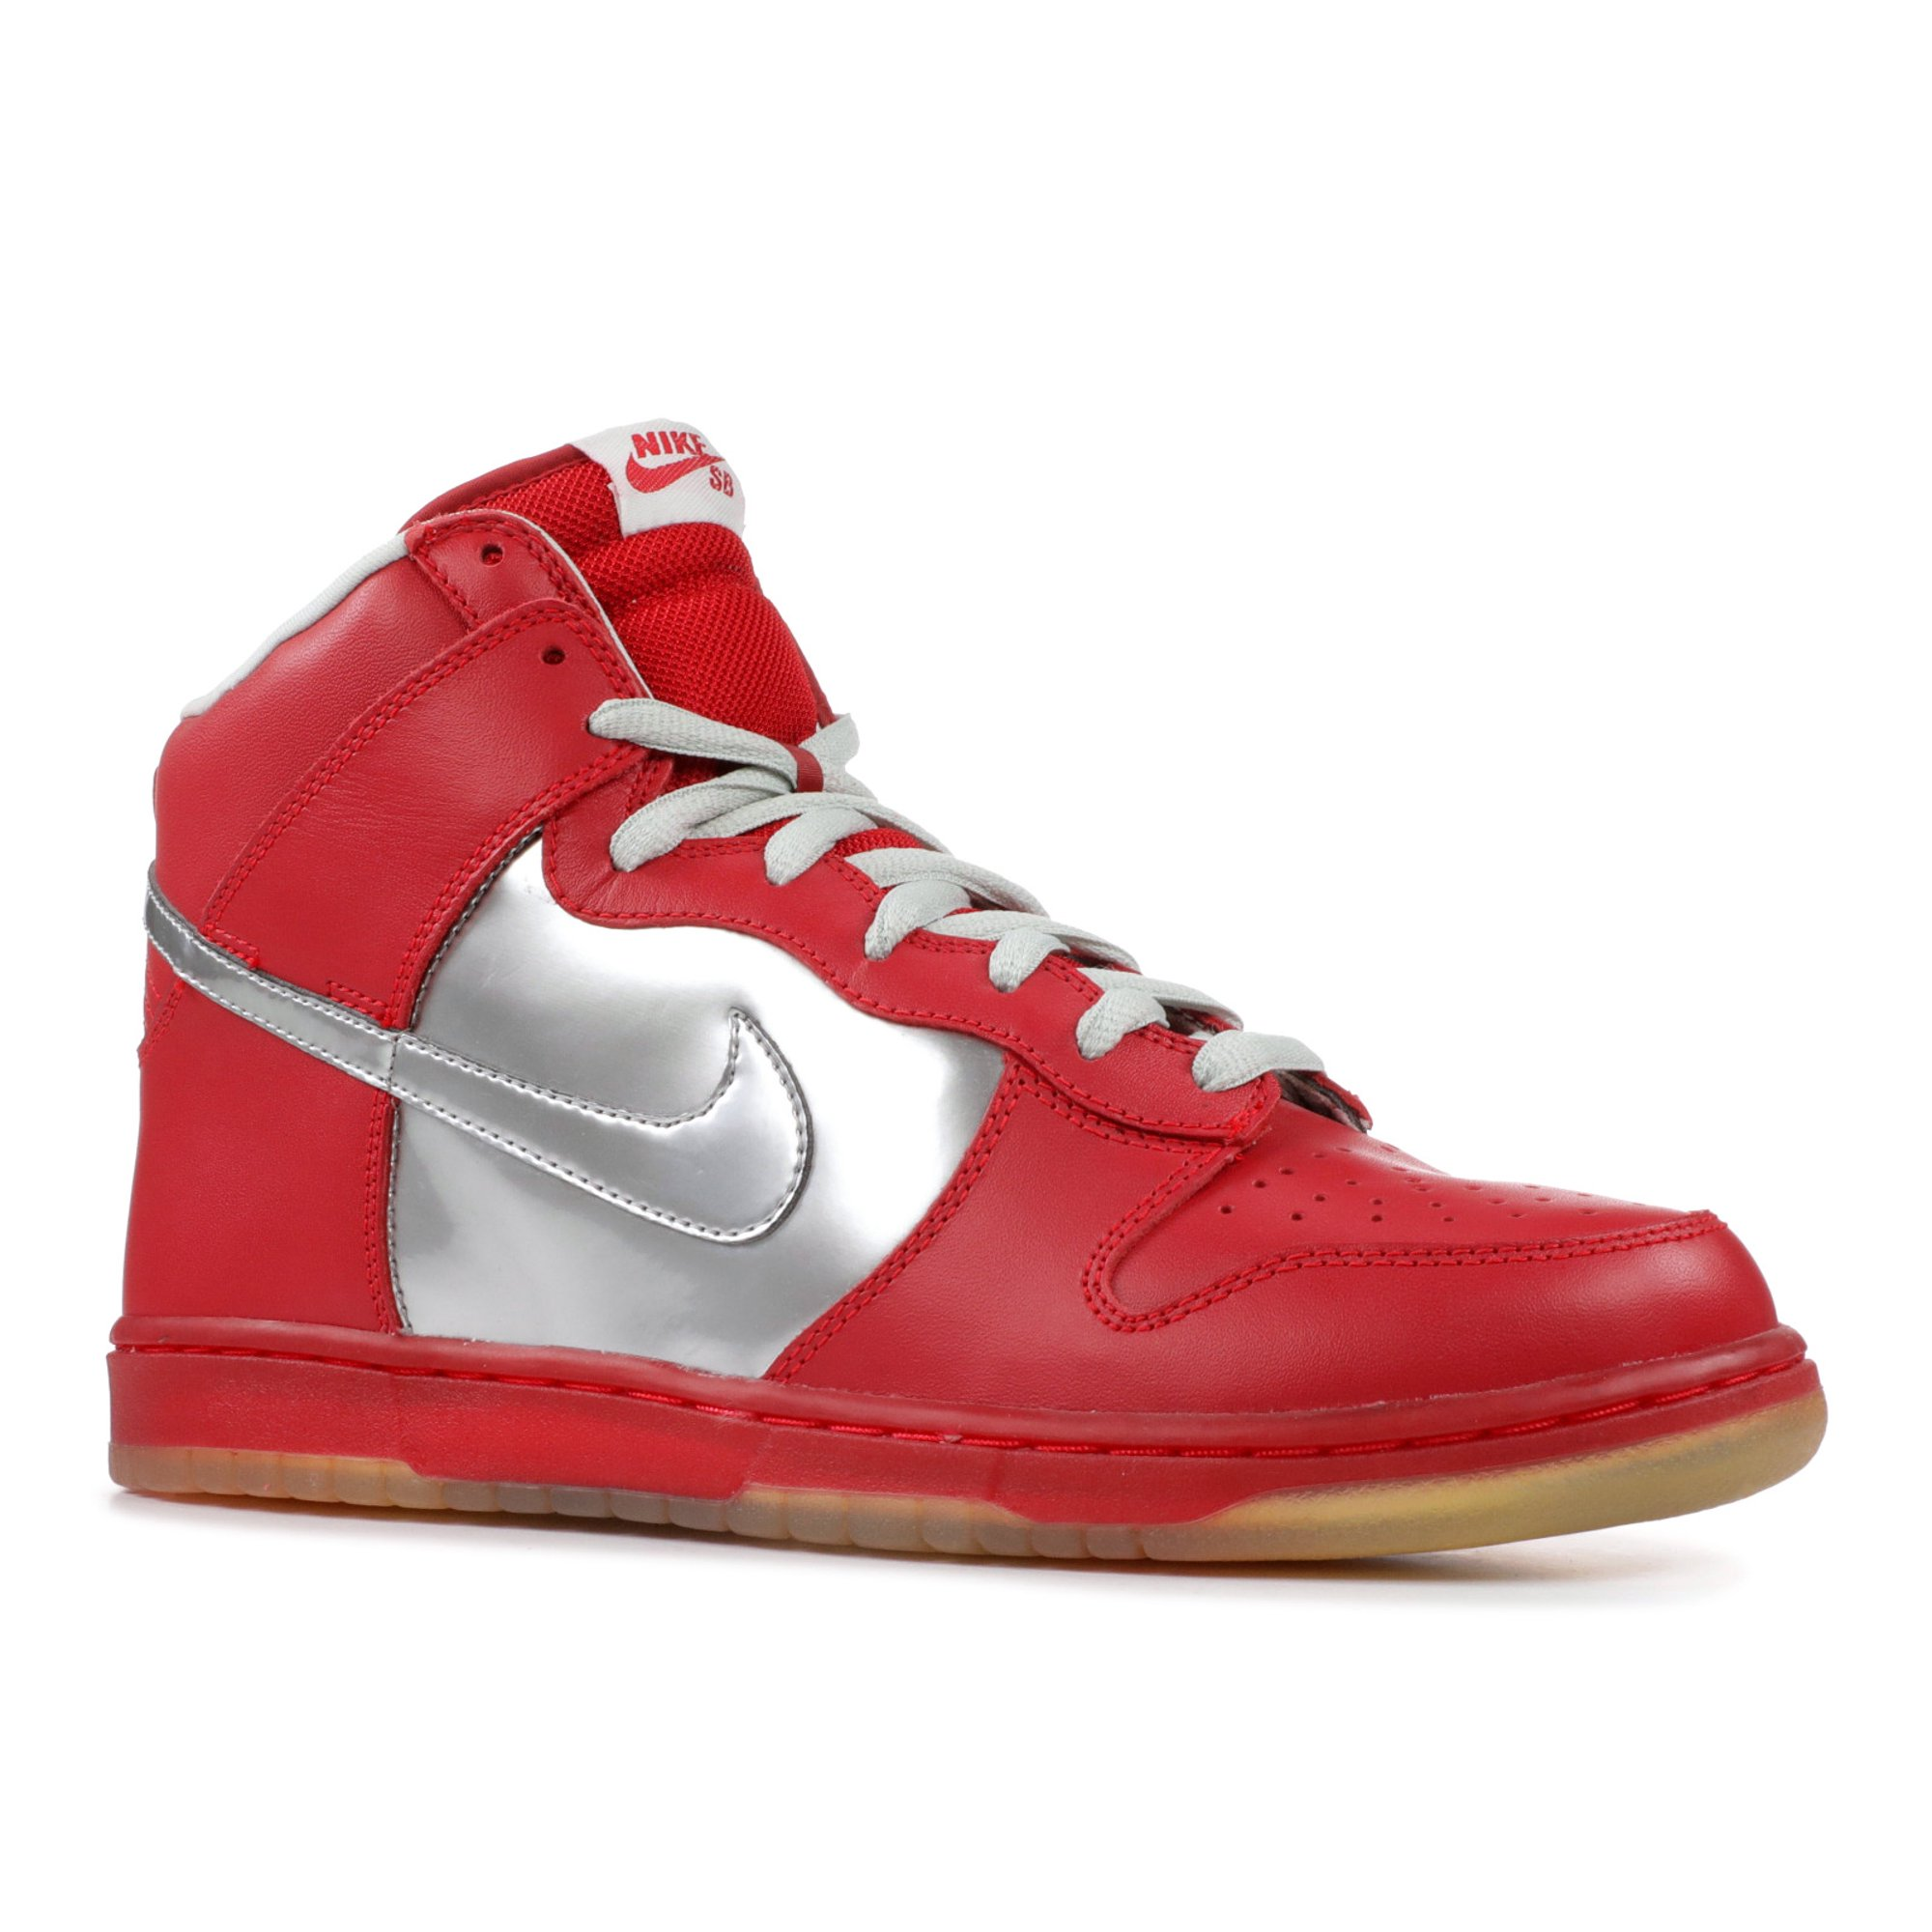 timeless design 74264 f2a3d Nike - Men - Nike Dunk High Premium Sb 'Mork & Mindy ...